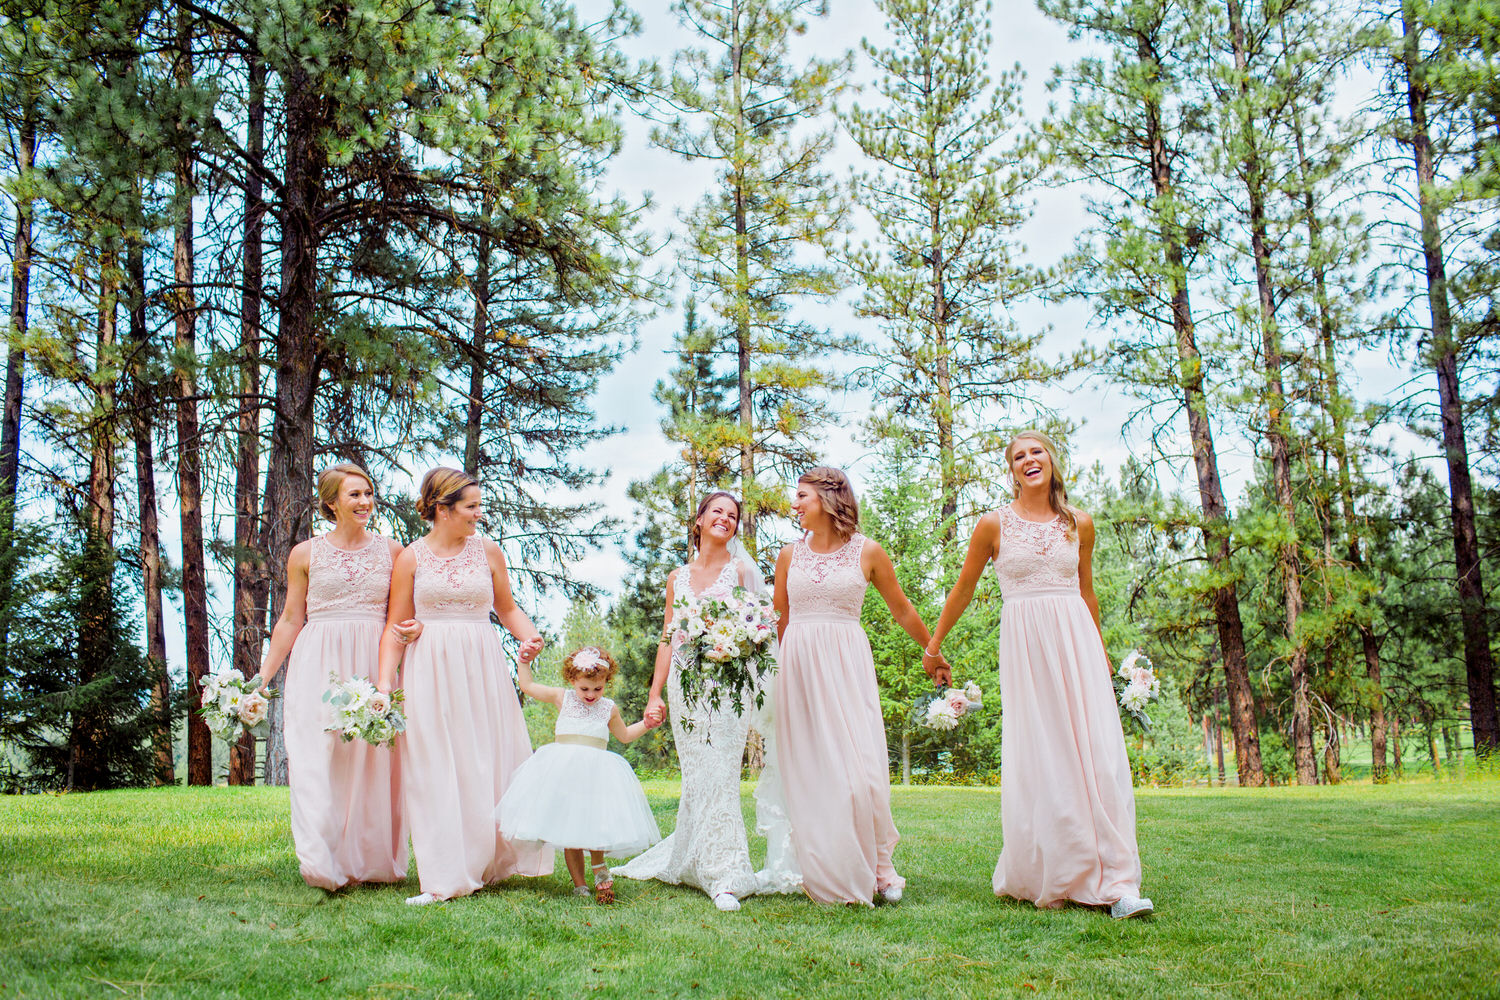 Keely and her bridesmaids at her wedding in Bozeman Montana. I was honored to be her photographer in such a classy wedding.